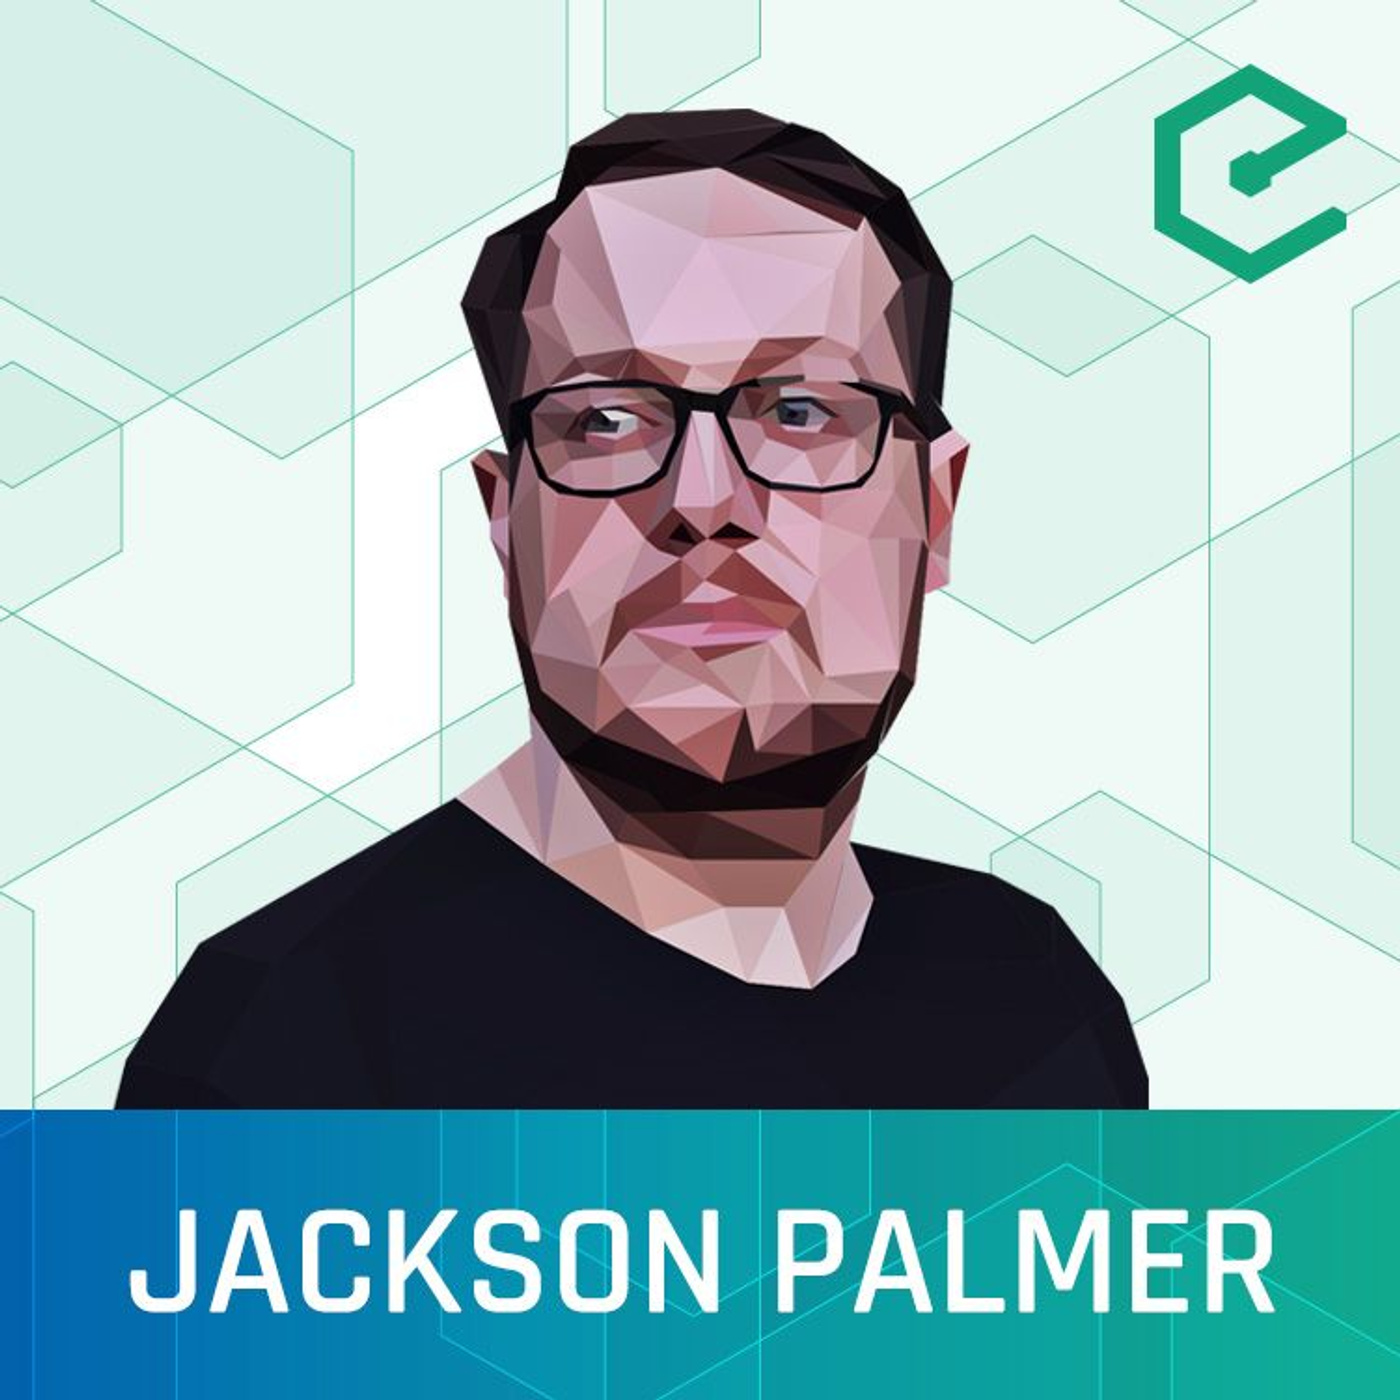 Jackson Palmer: Dogecoin – wow! so meme. such community. very charity. much story.